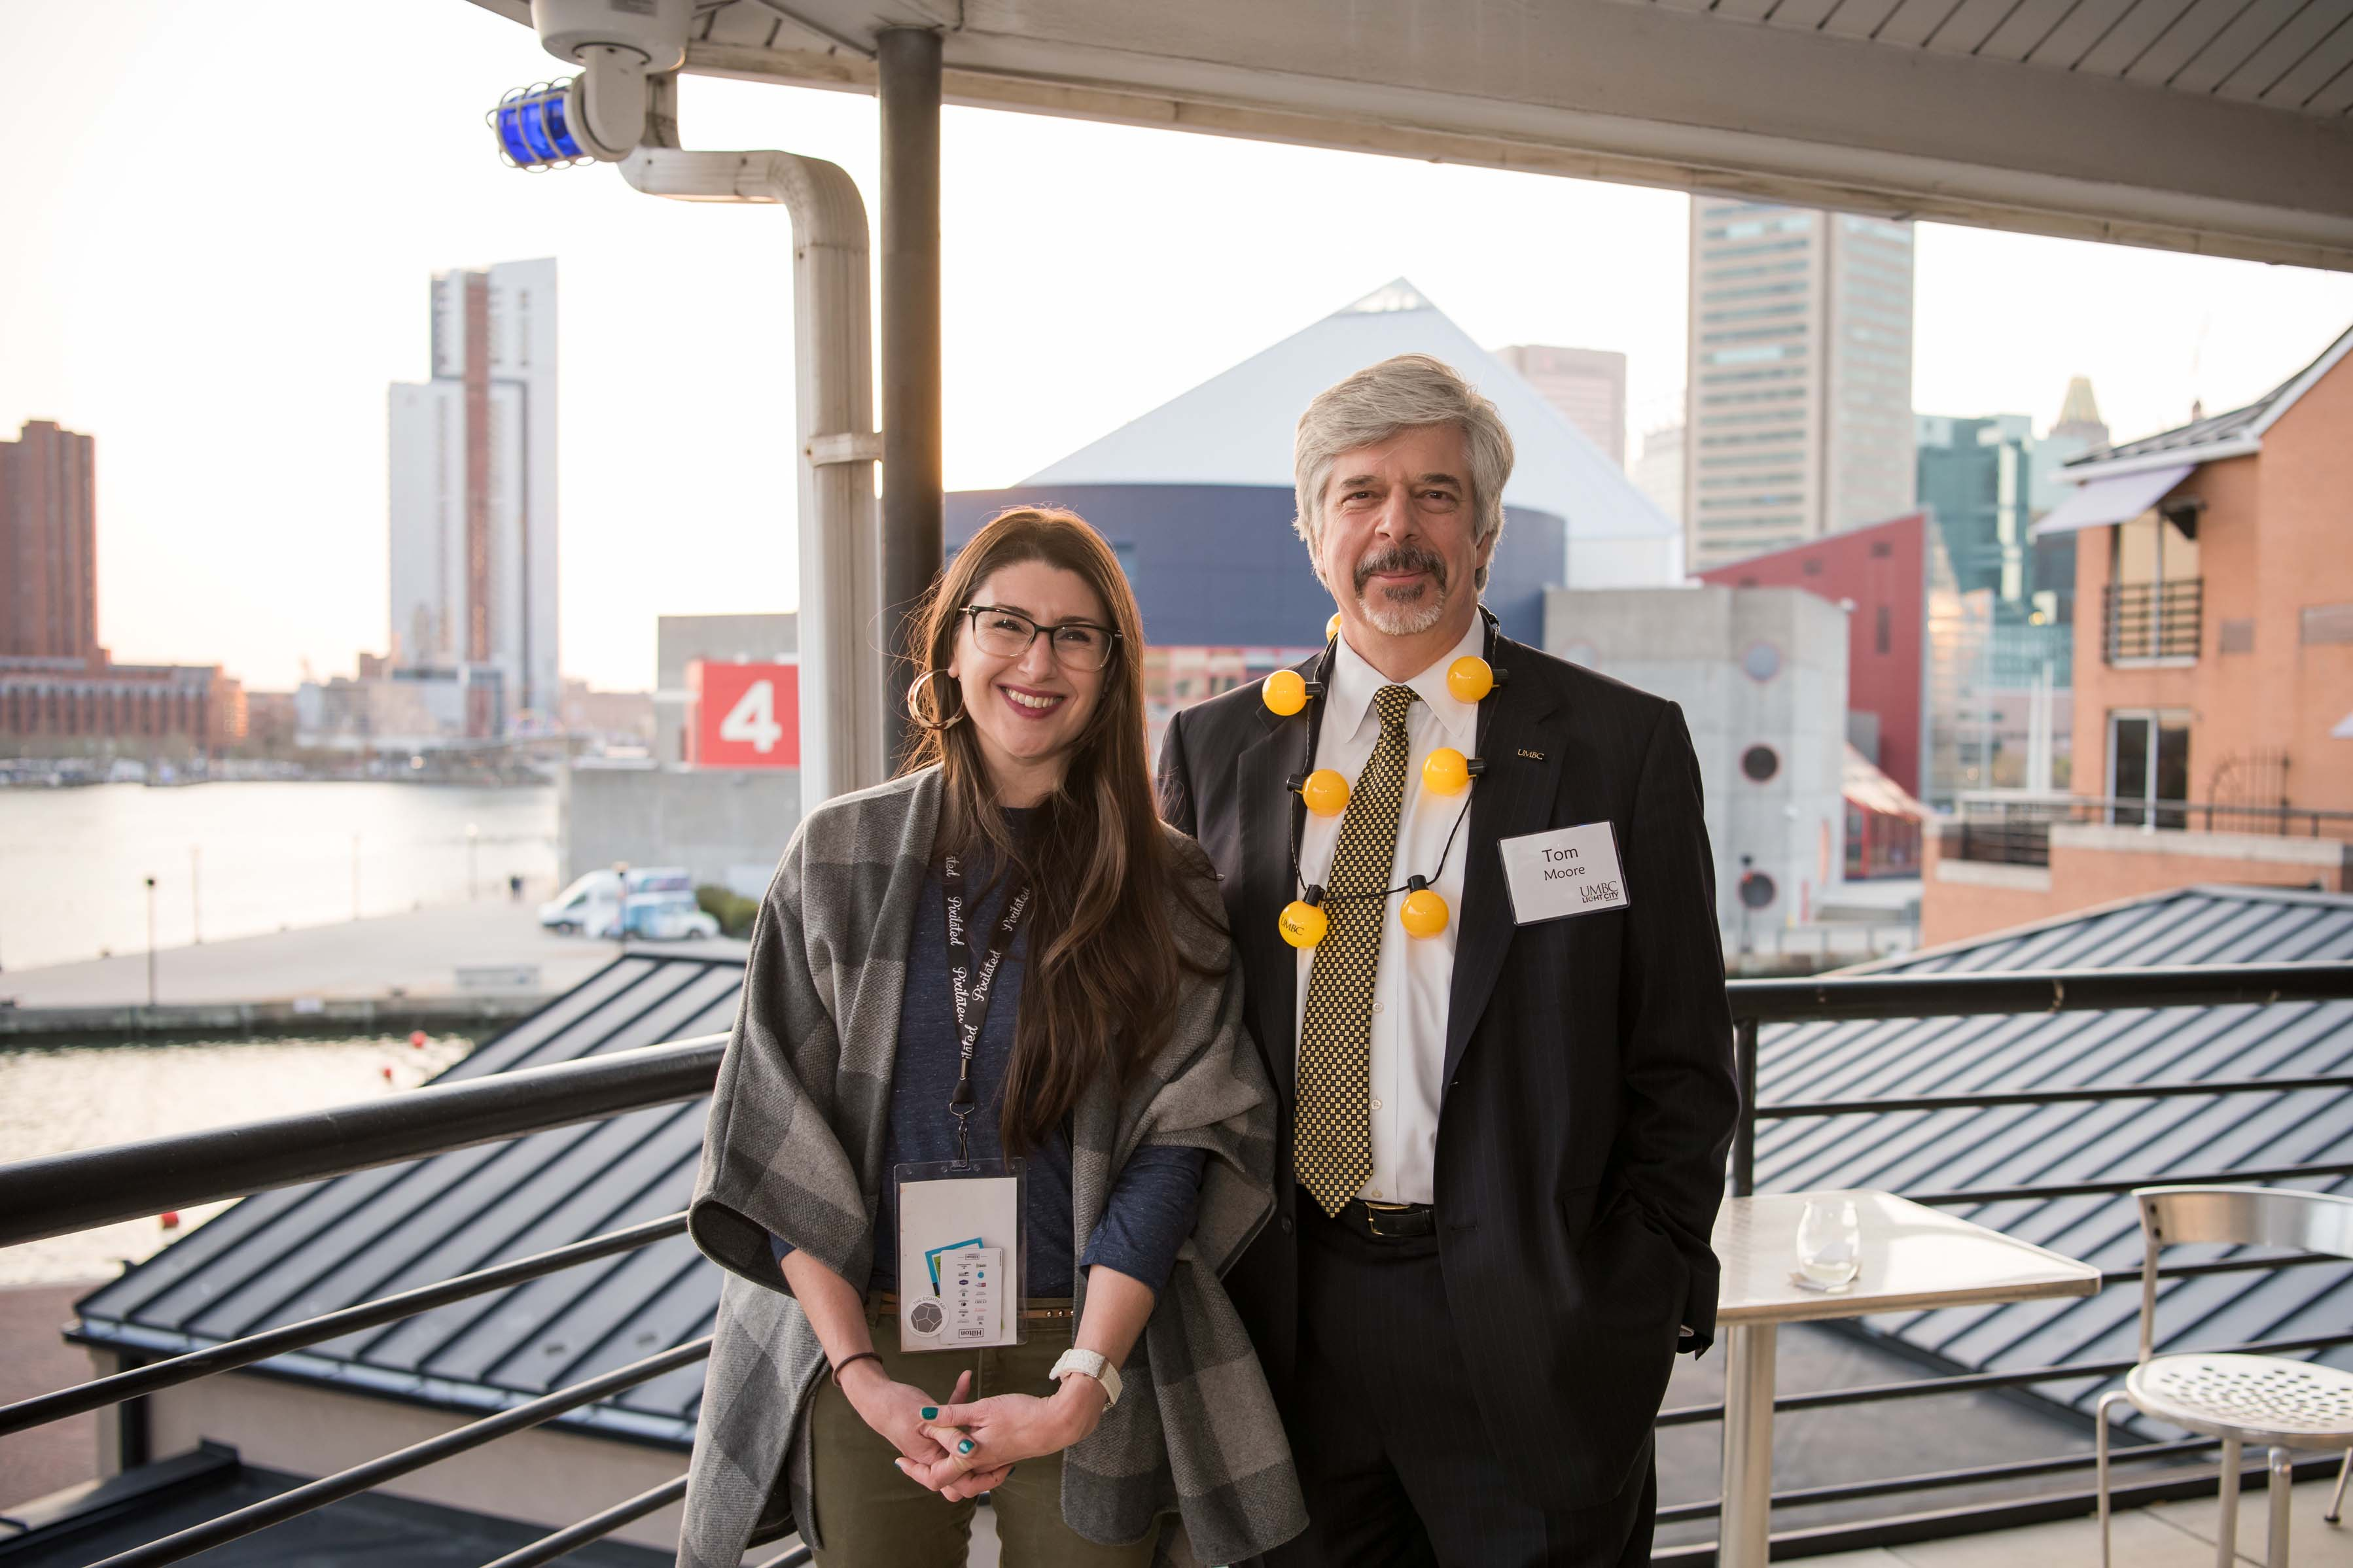 Tom Moore and woman pose outside at Pier5 reception